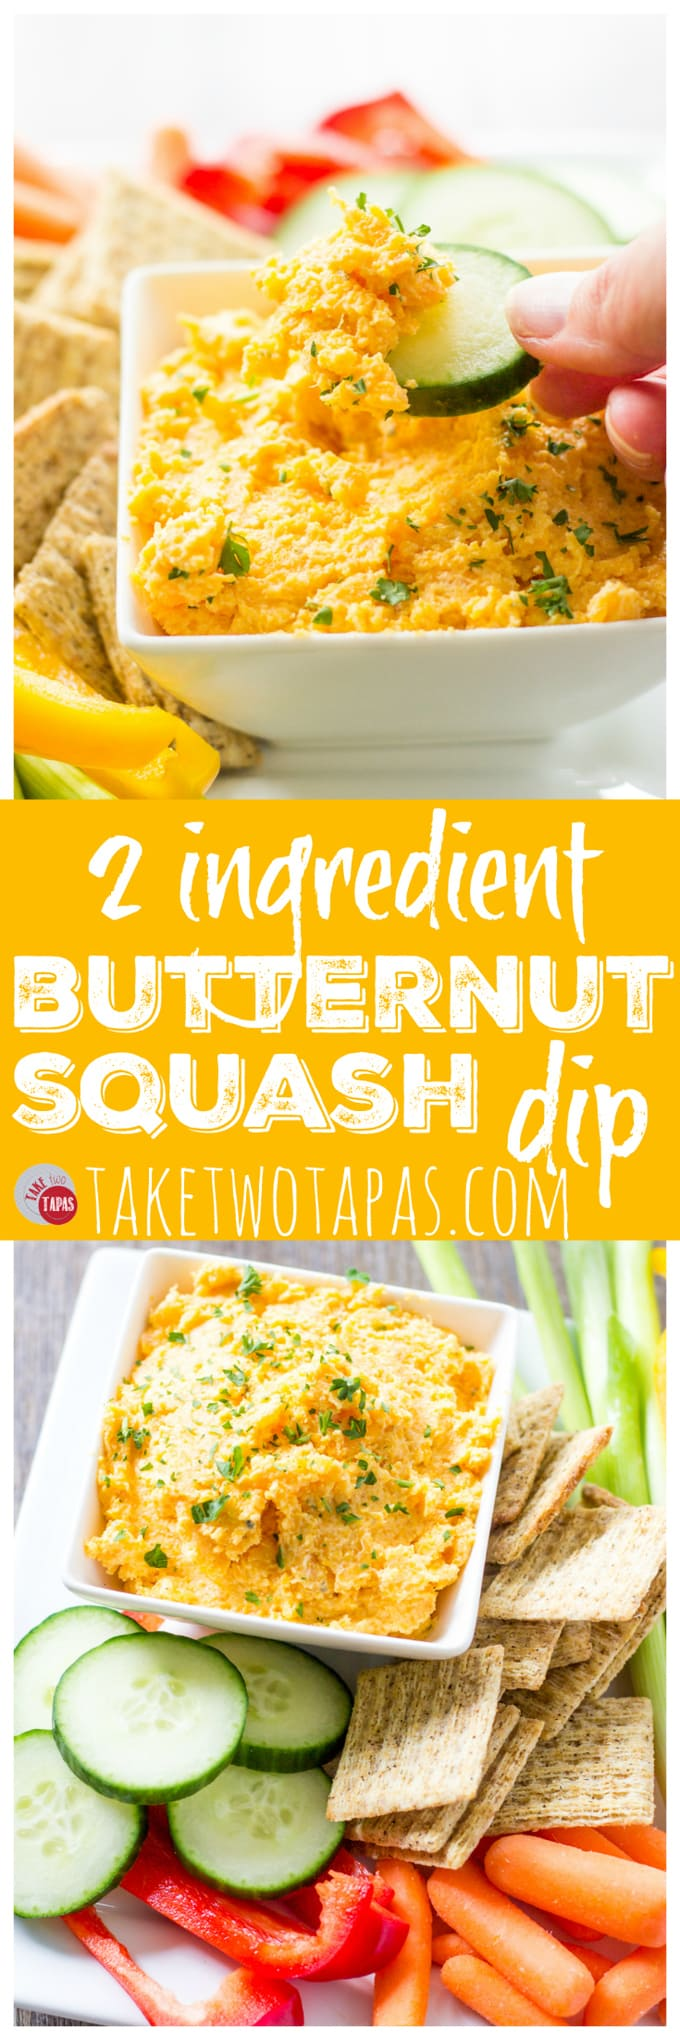 Butternut squash dip with only 2 ingredients! | Take Two Tapas